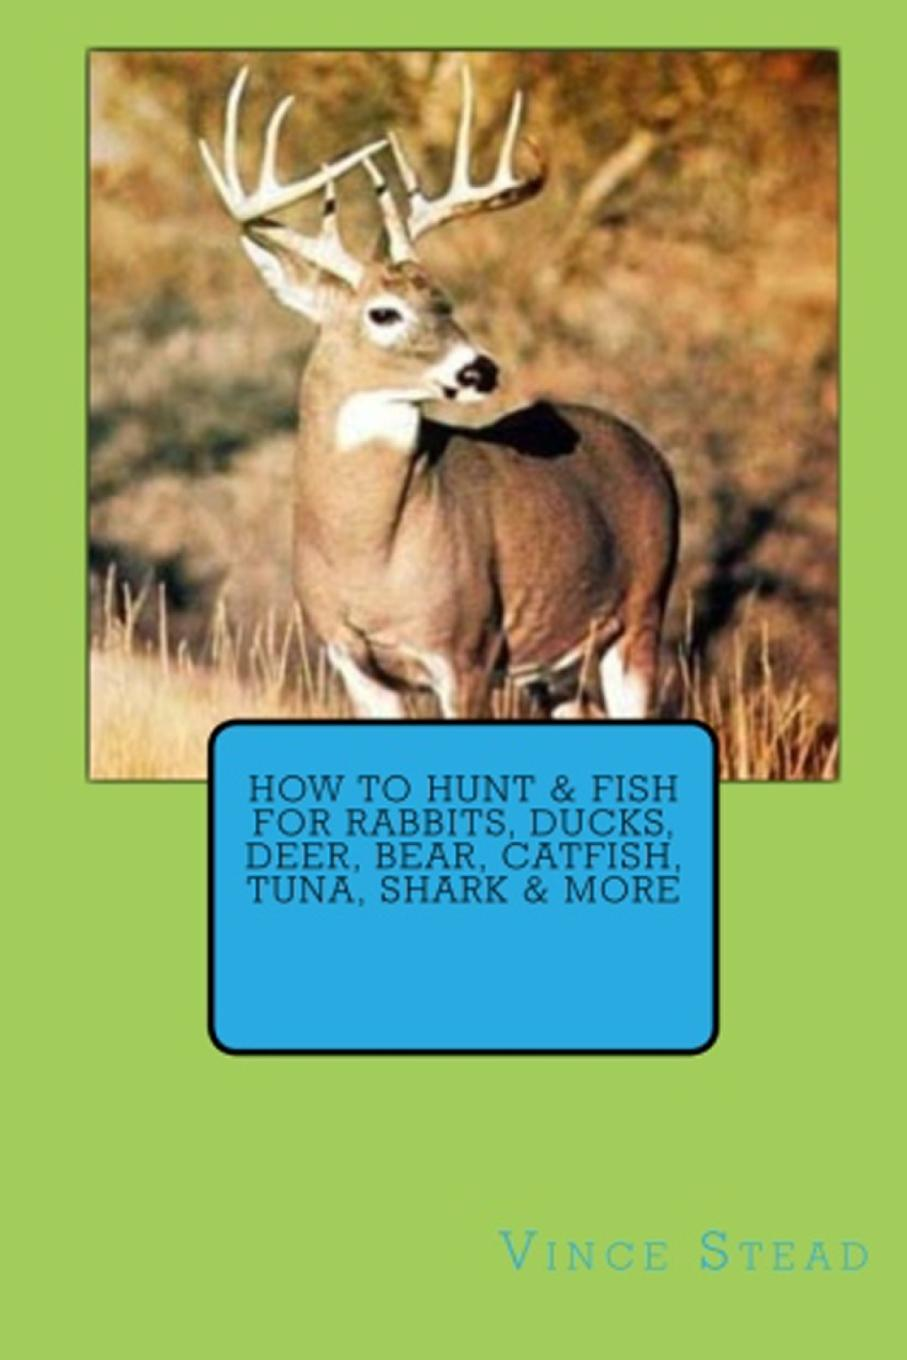 цена на Vince Stead How to Hunt . Fish for Rabbits, Ducks, Deer, Bear, Catfish, Tuna, Shark . More